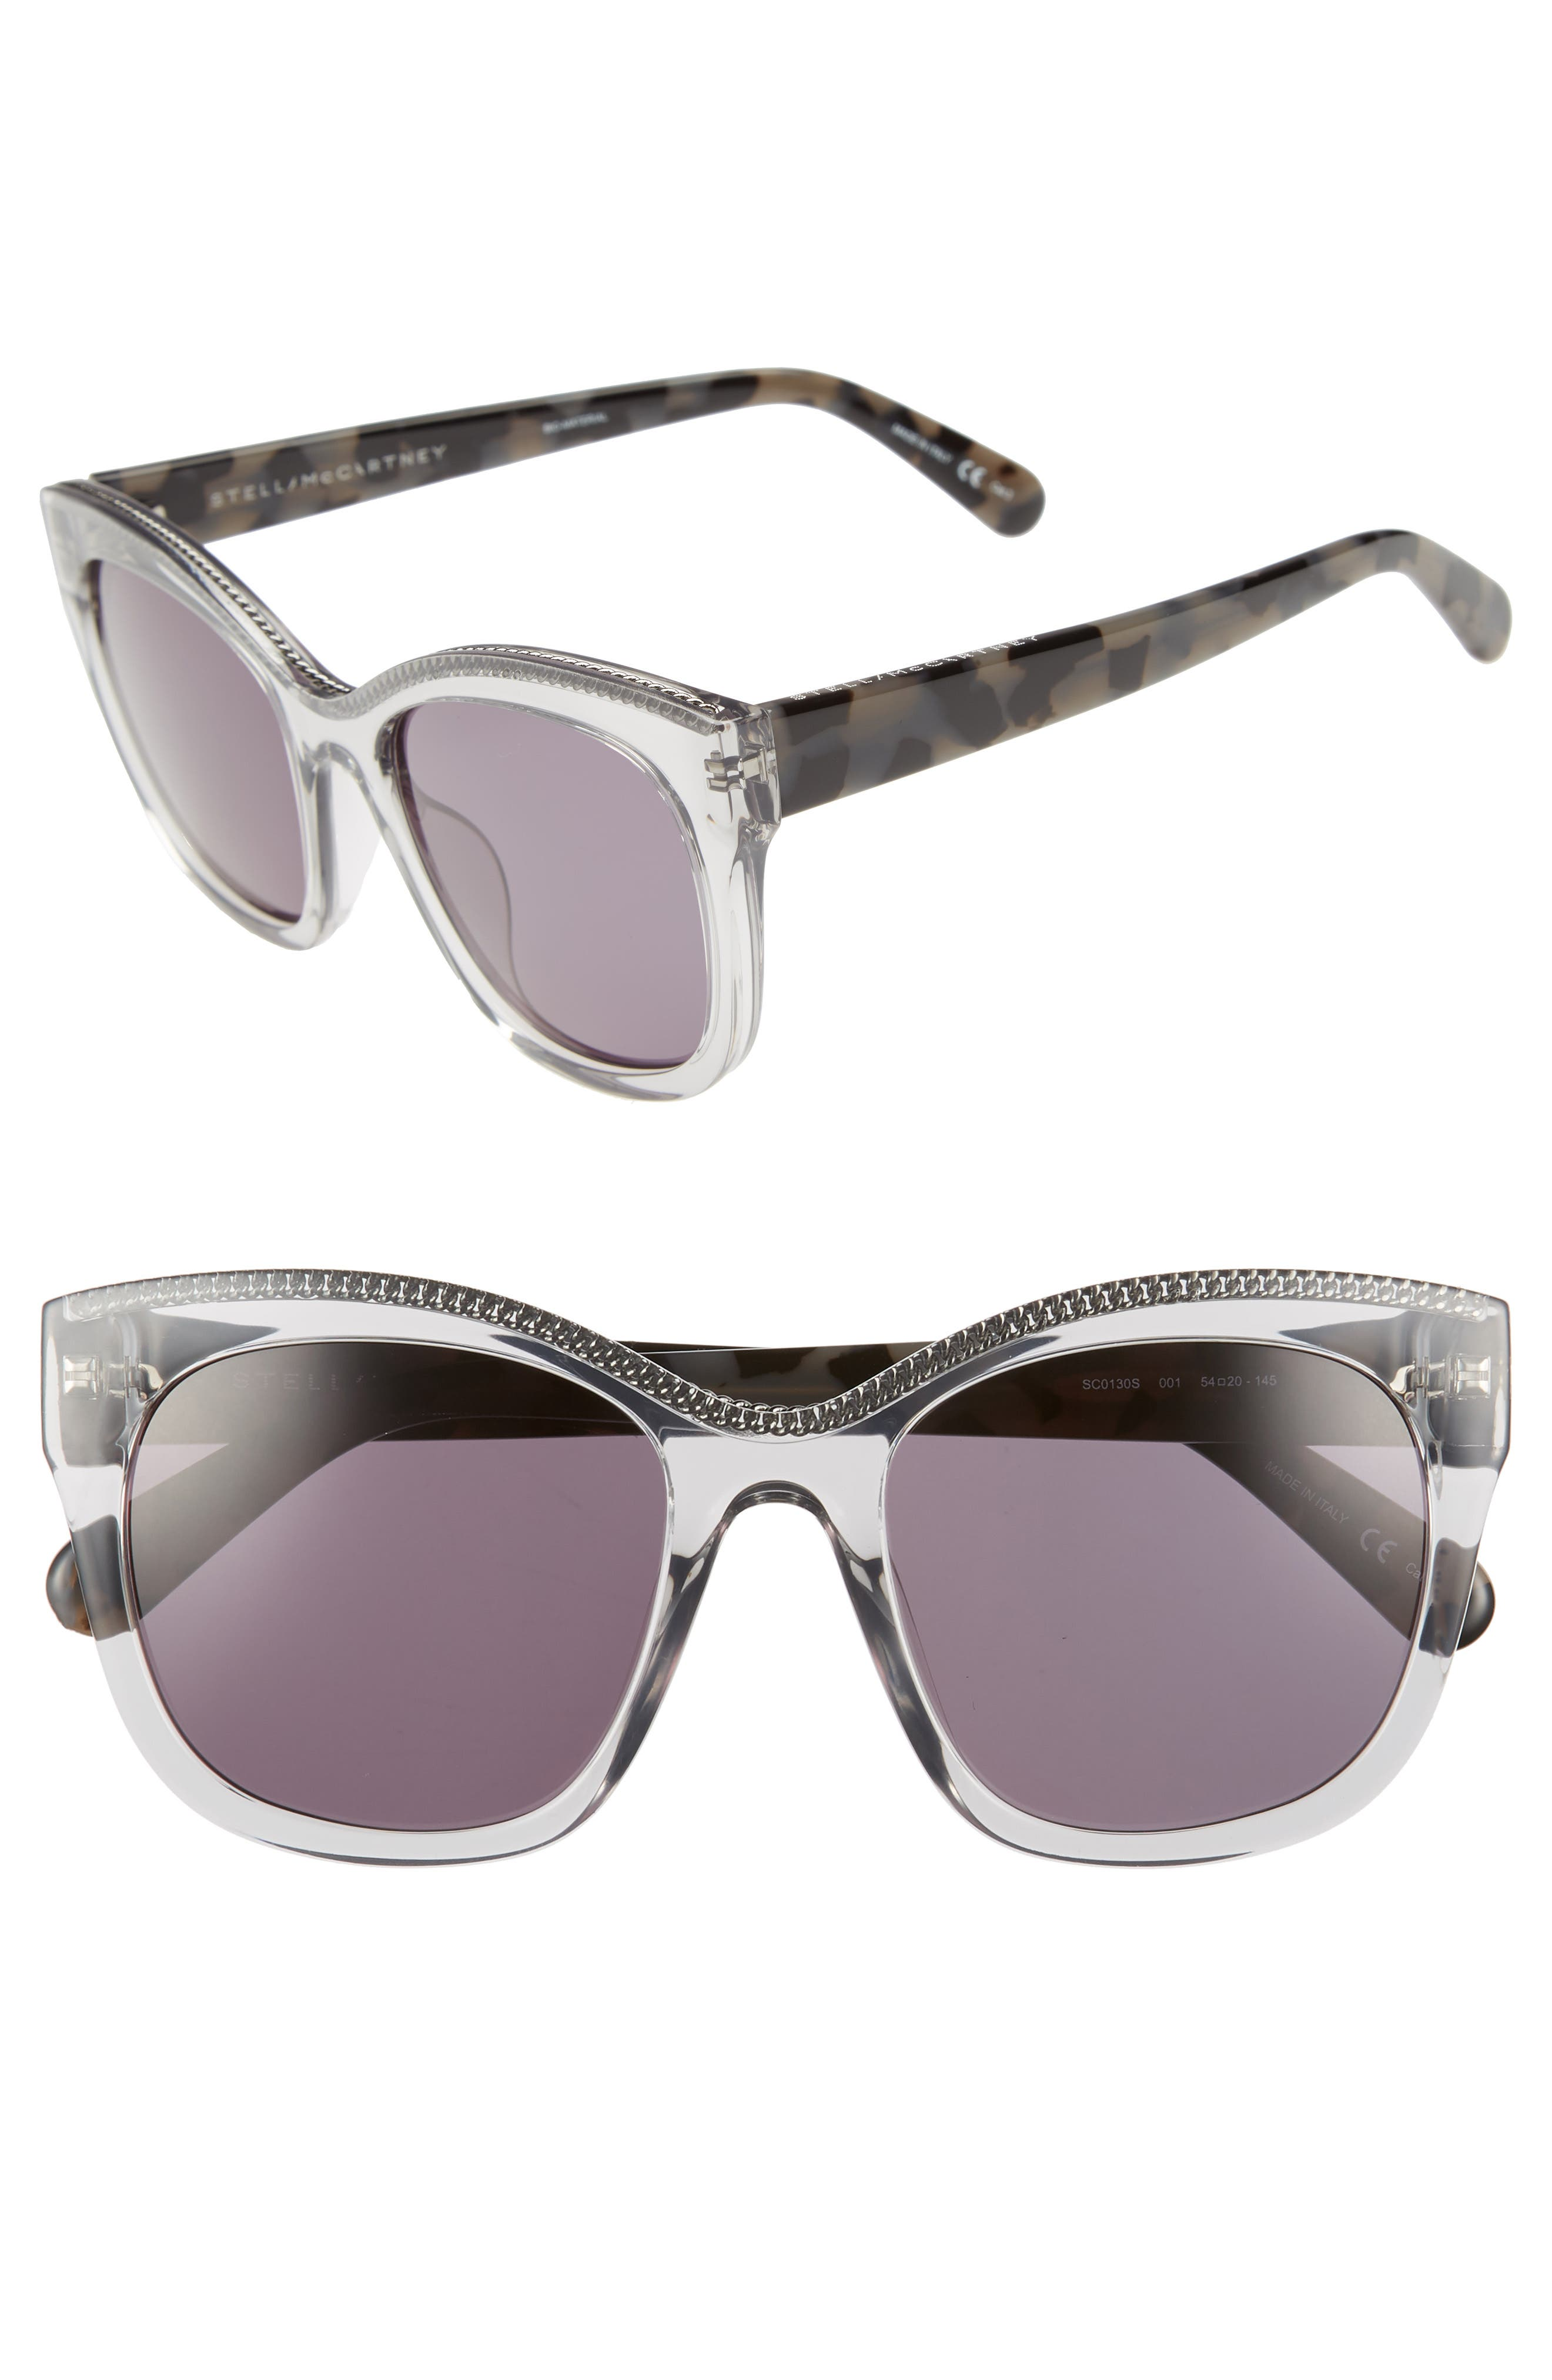 54mm Sunglasses,                             Main thumbnail 1, color,                             GREY HAVANA